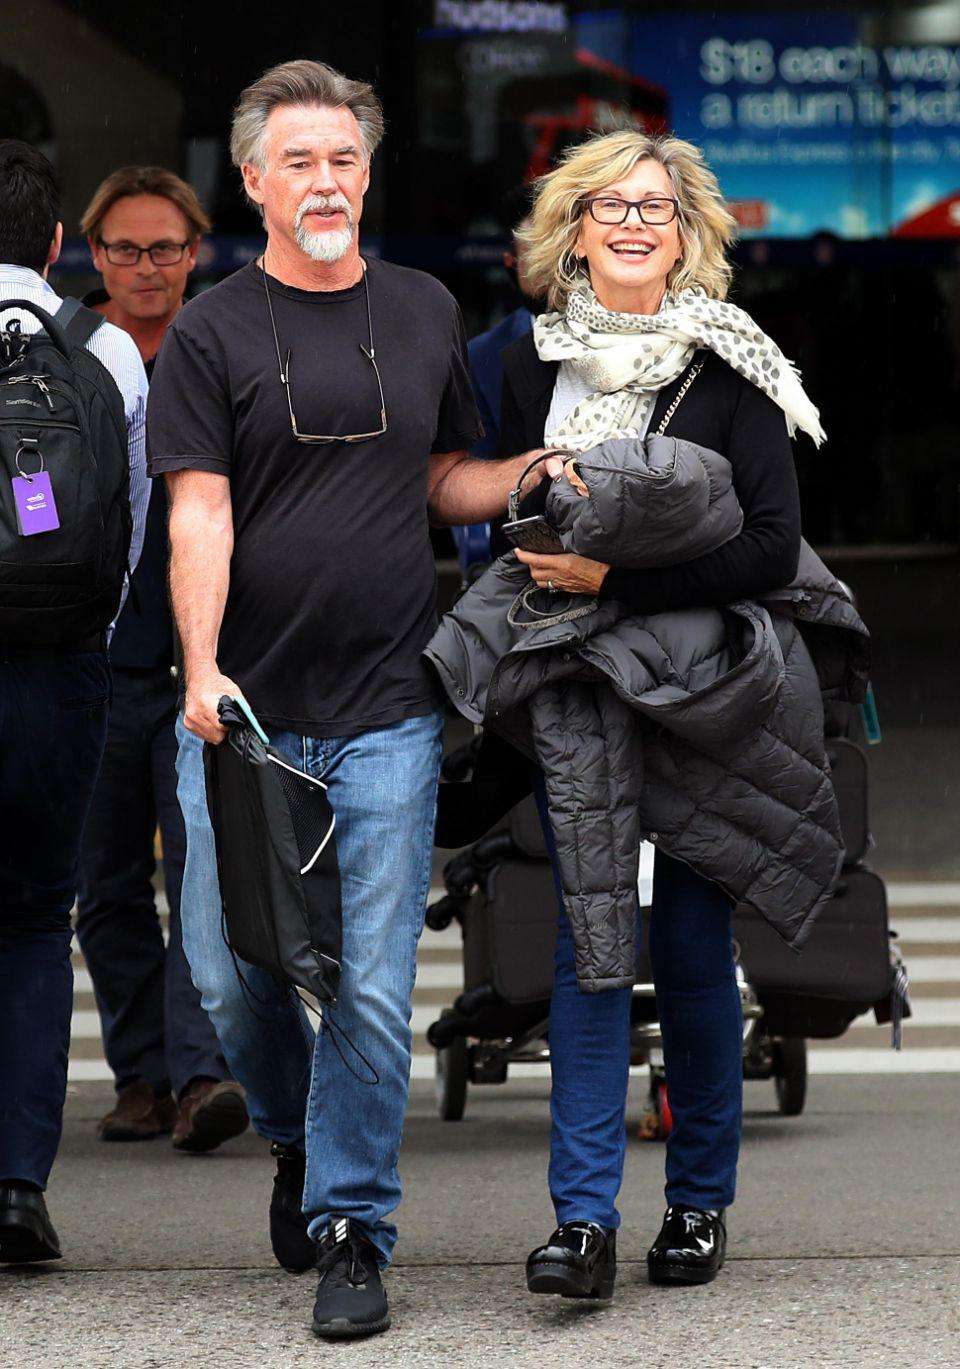 Olivia beamed a big smile as she arrived hand-in-hand with her husband John Easterling in Melbourne. Source: Diimex